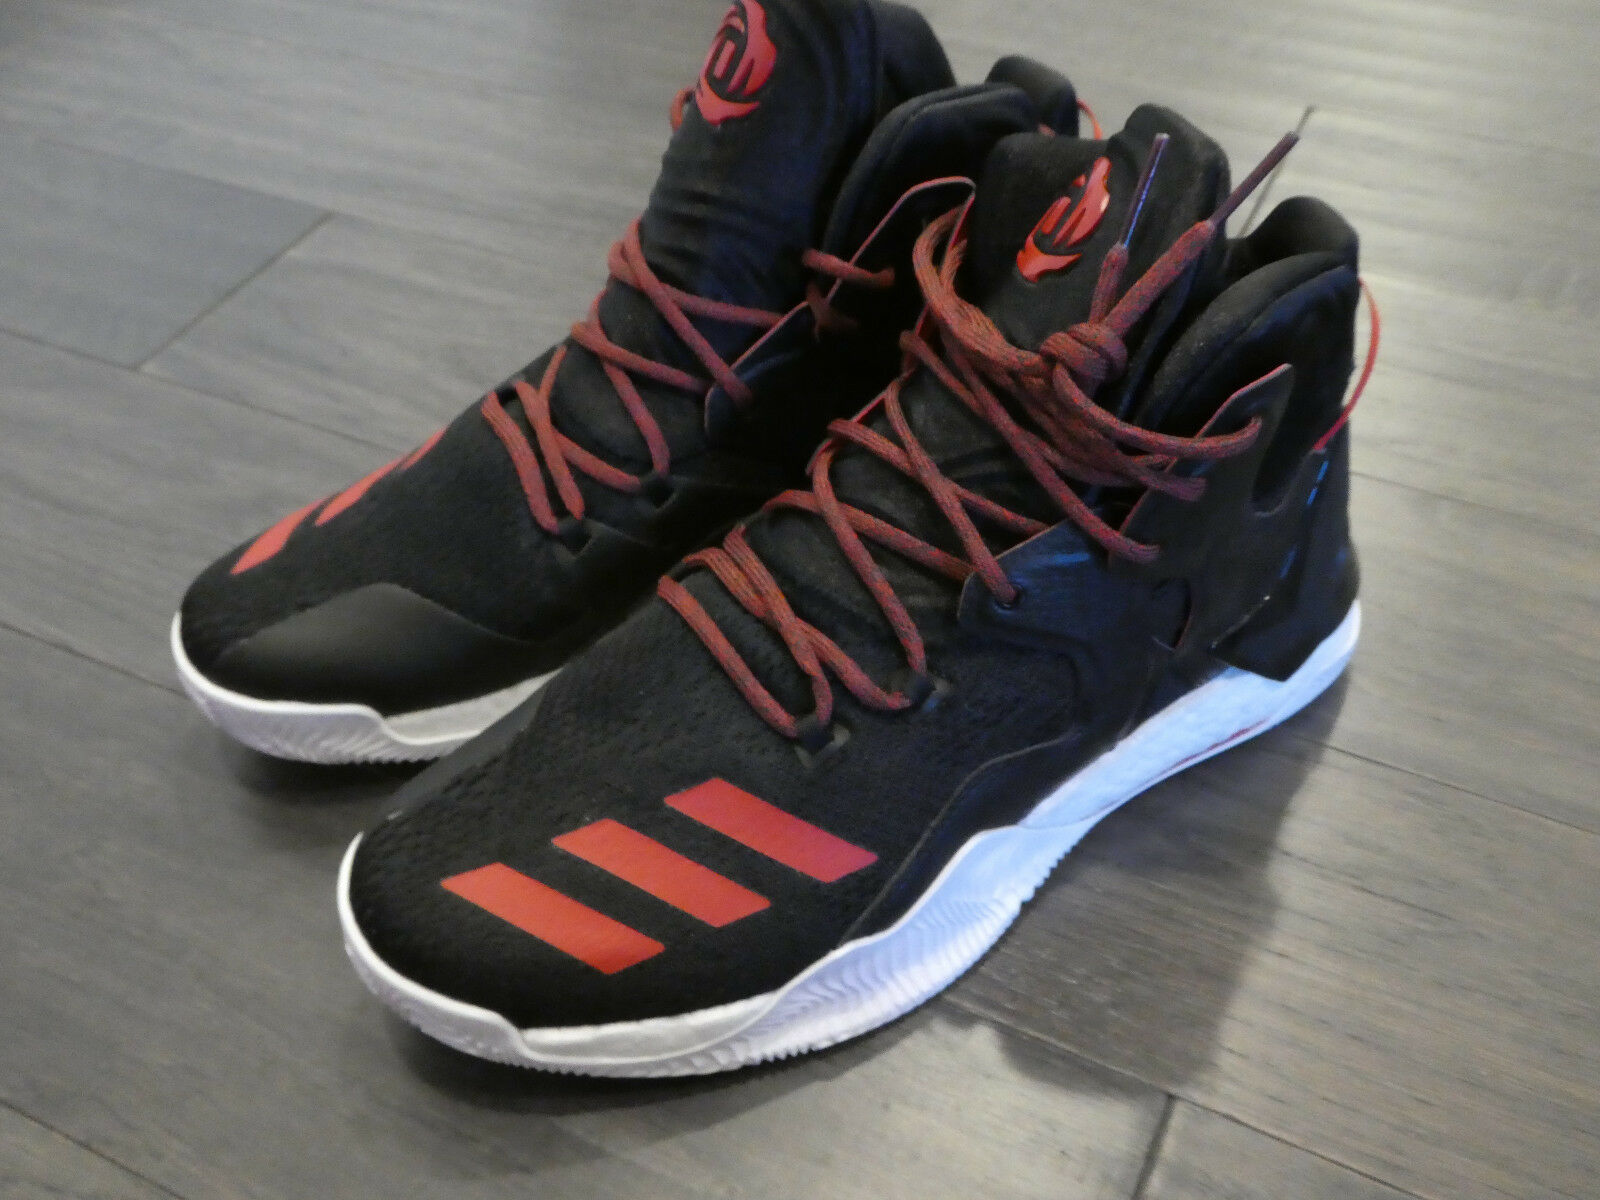 Adidas D Rose 7 shoes sneakers basketball B54133 black red size 12